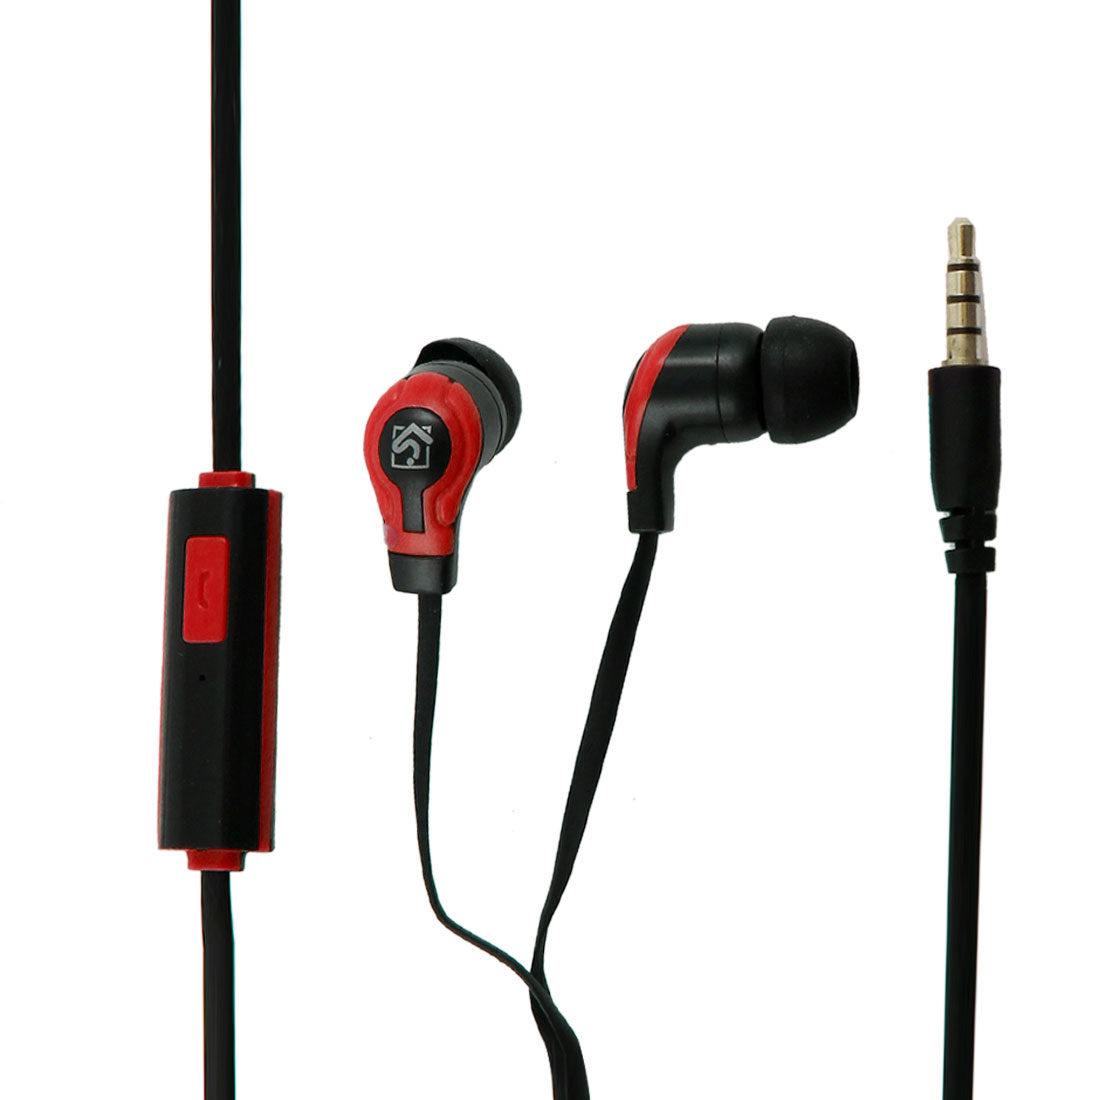 3.5mm Connector In Ear Stereo Headphone Earphone Red Black for PC MP3 MP4 DVD